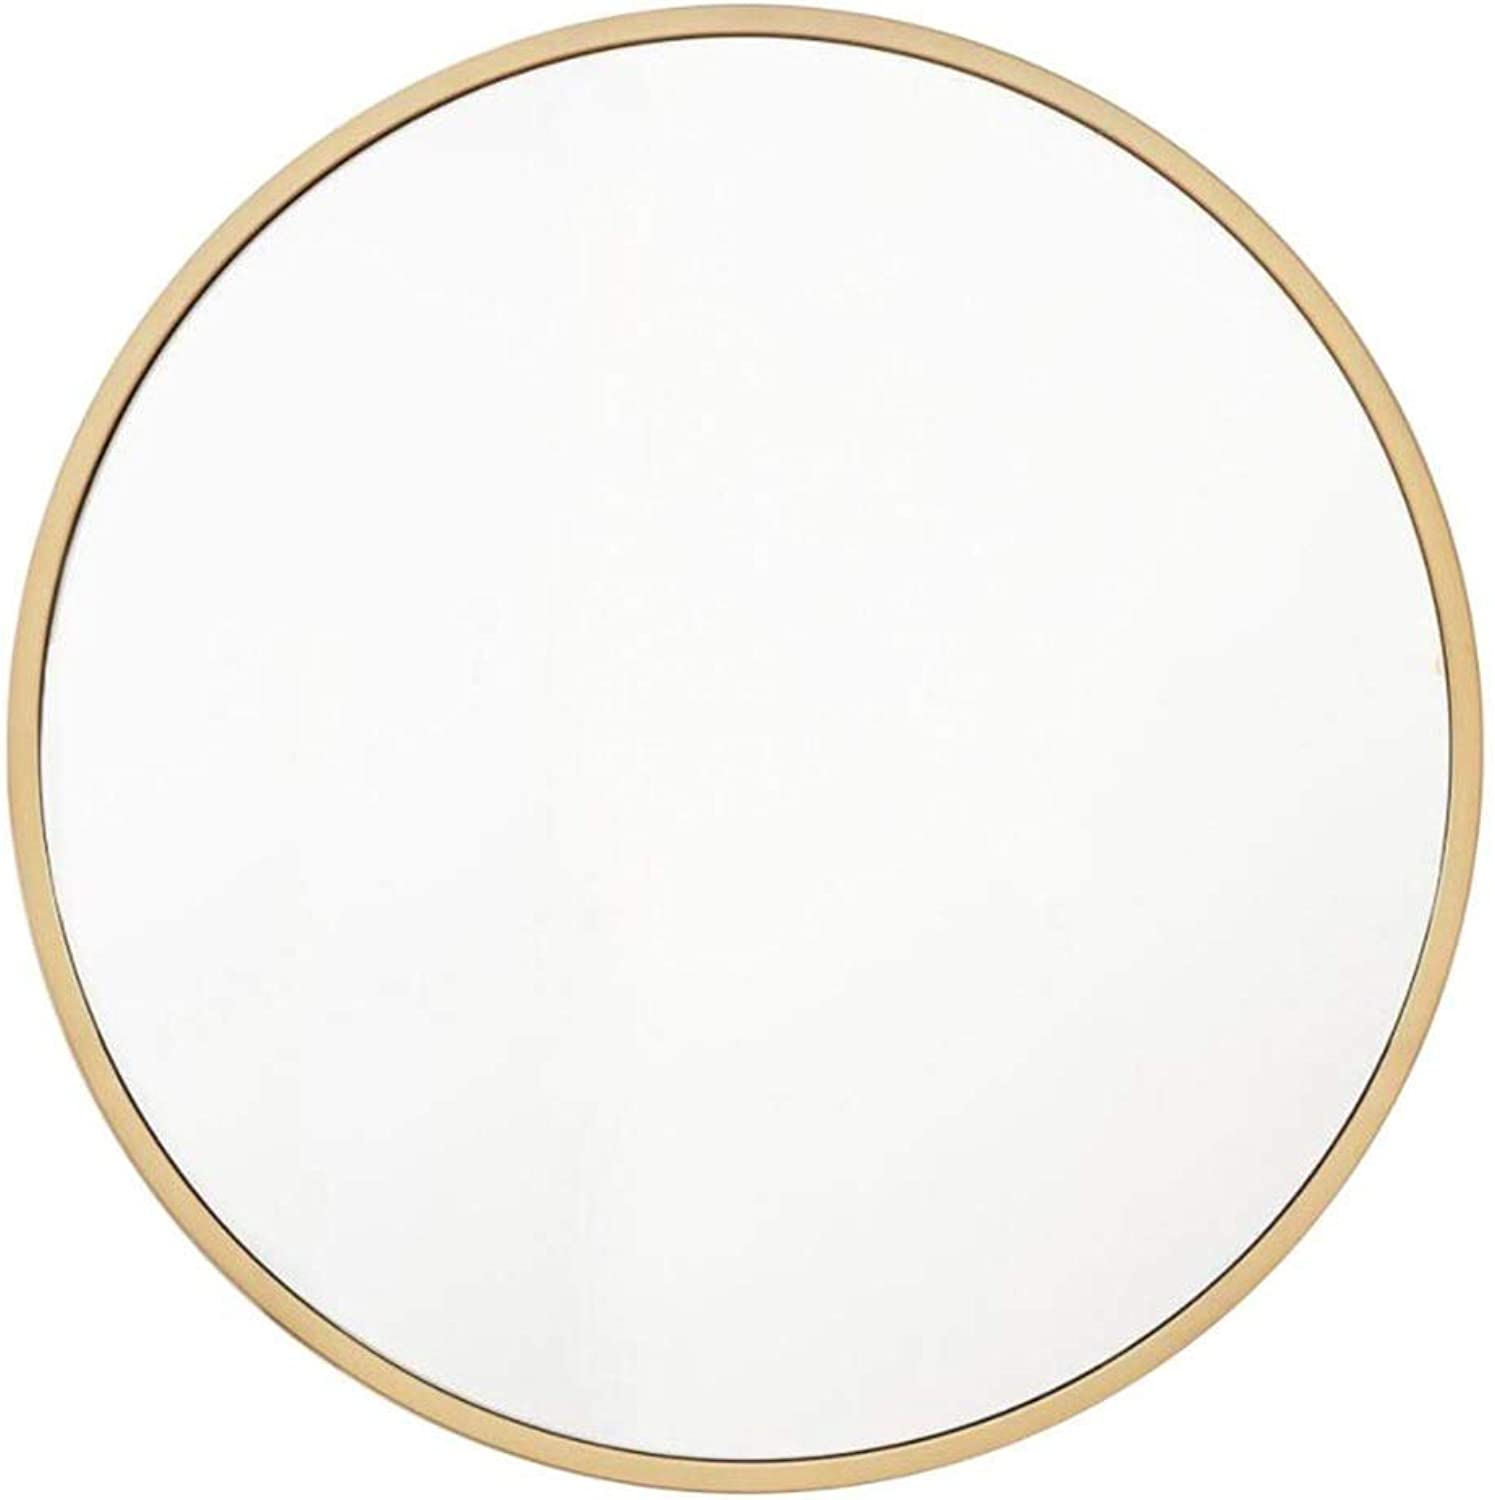 XIUXIU Mirror Family Simple Round Vanity Mirror Floating Floating Mirror (color   gold, Size   40cm)